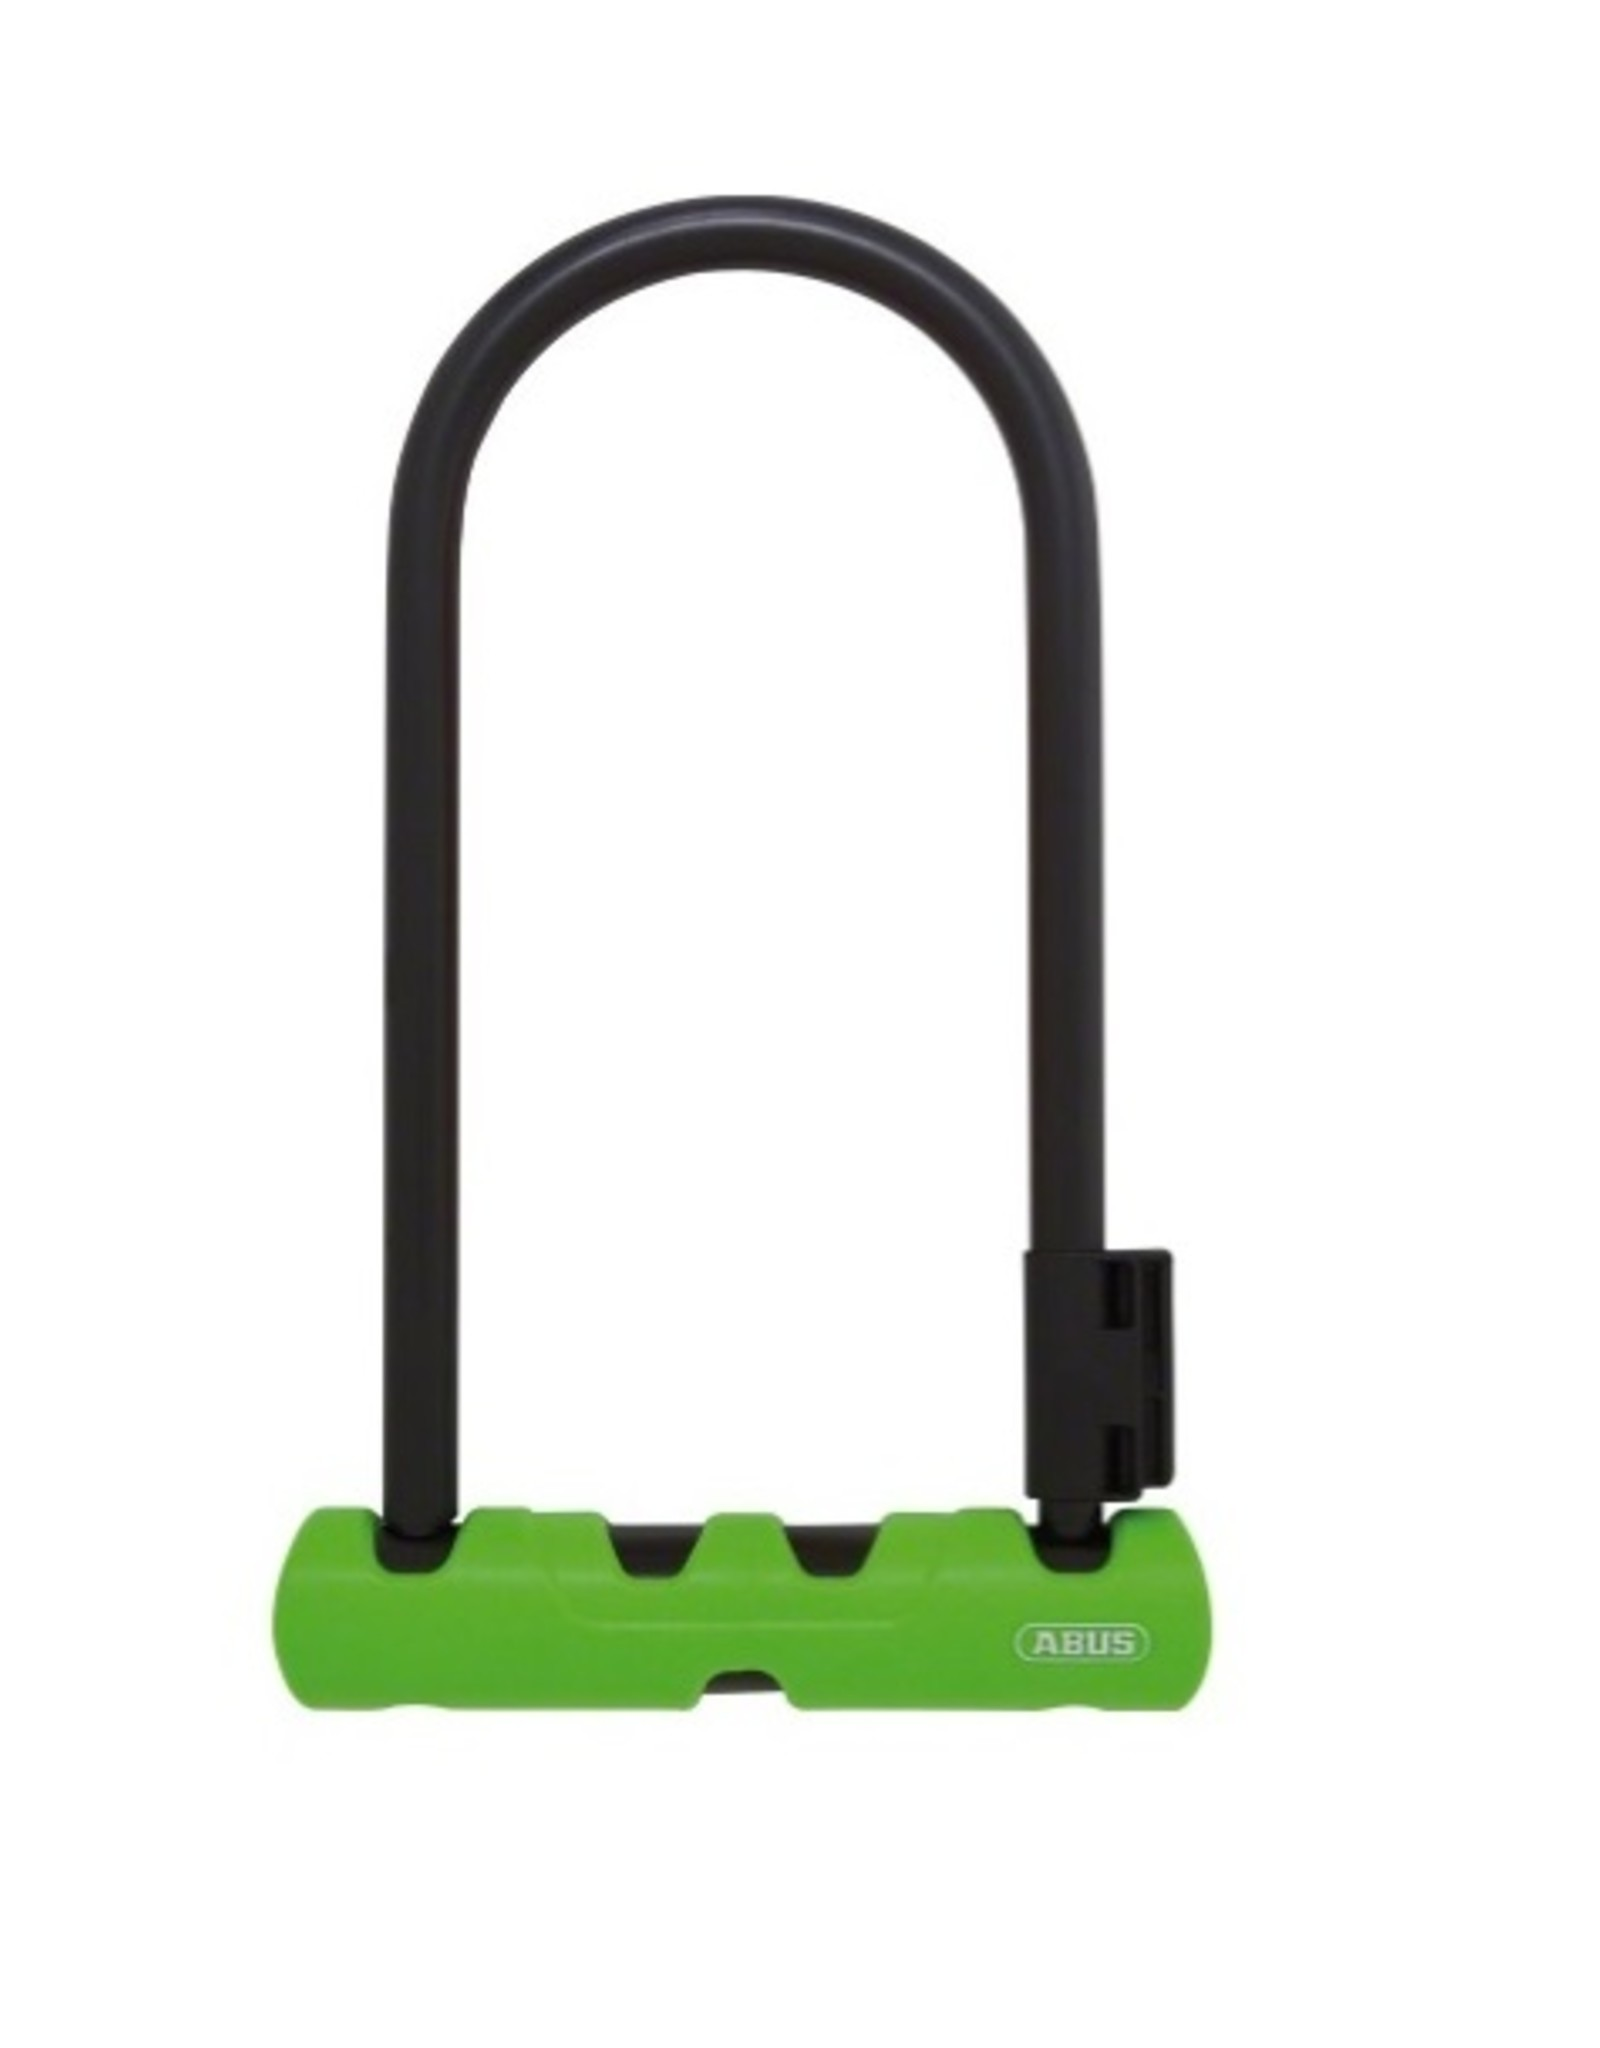 "Abus Abus Ultra 410 U-Lock - 3.9 x 9"", Keyed, Black/Green, Includes bracket"